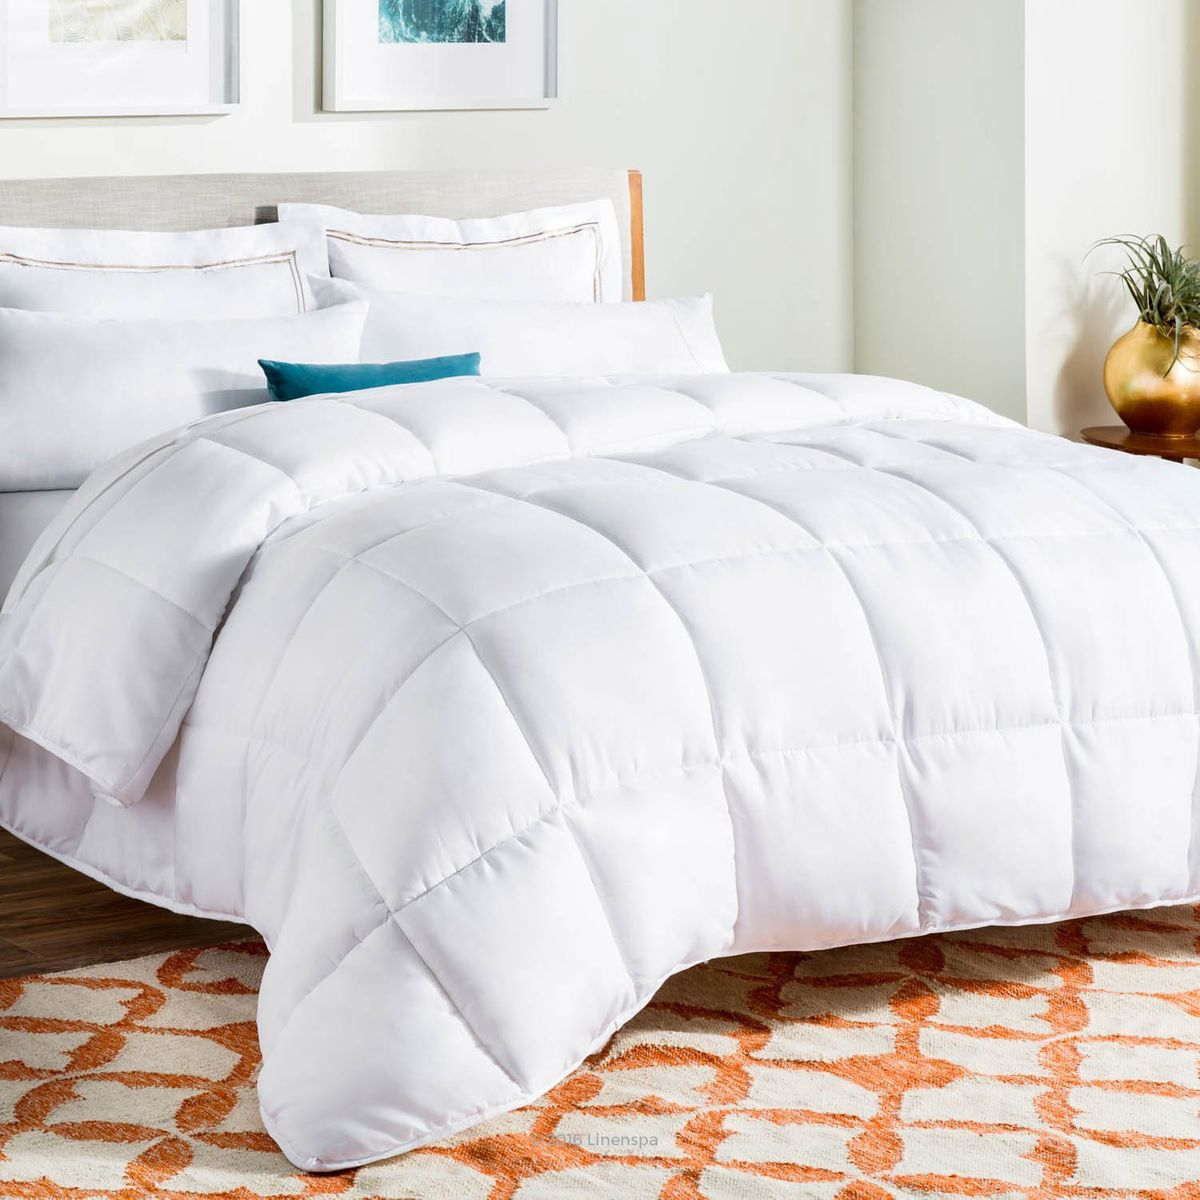 16 Best Comforters On Amazon 2021 The Strategist New York Magazine